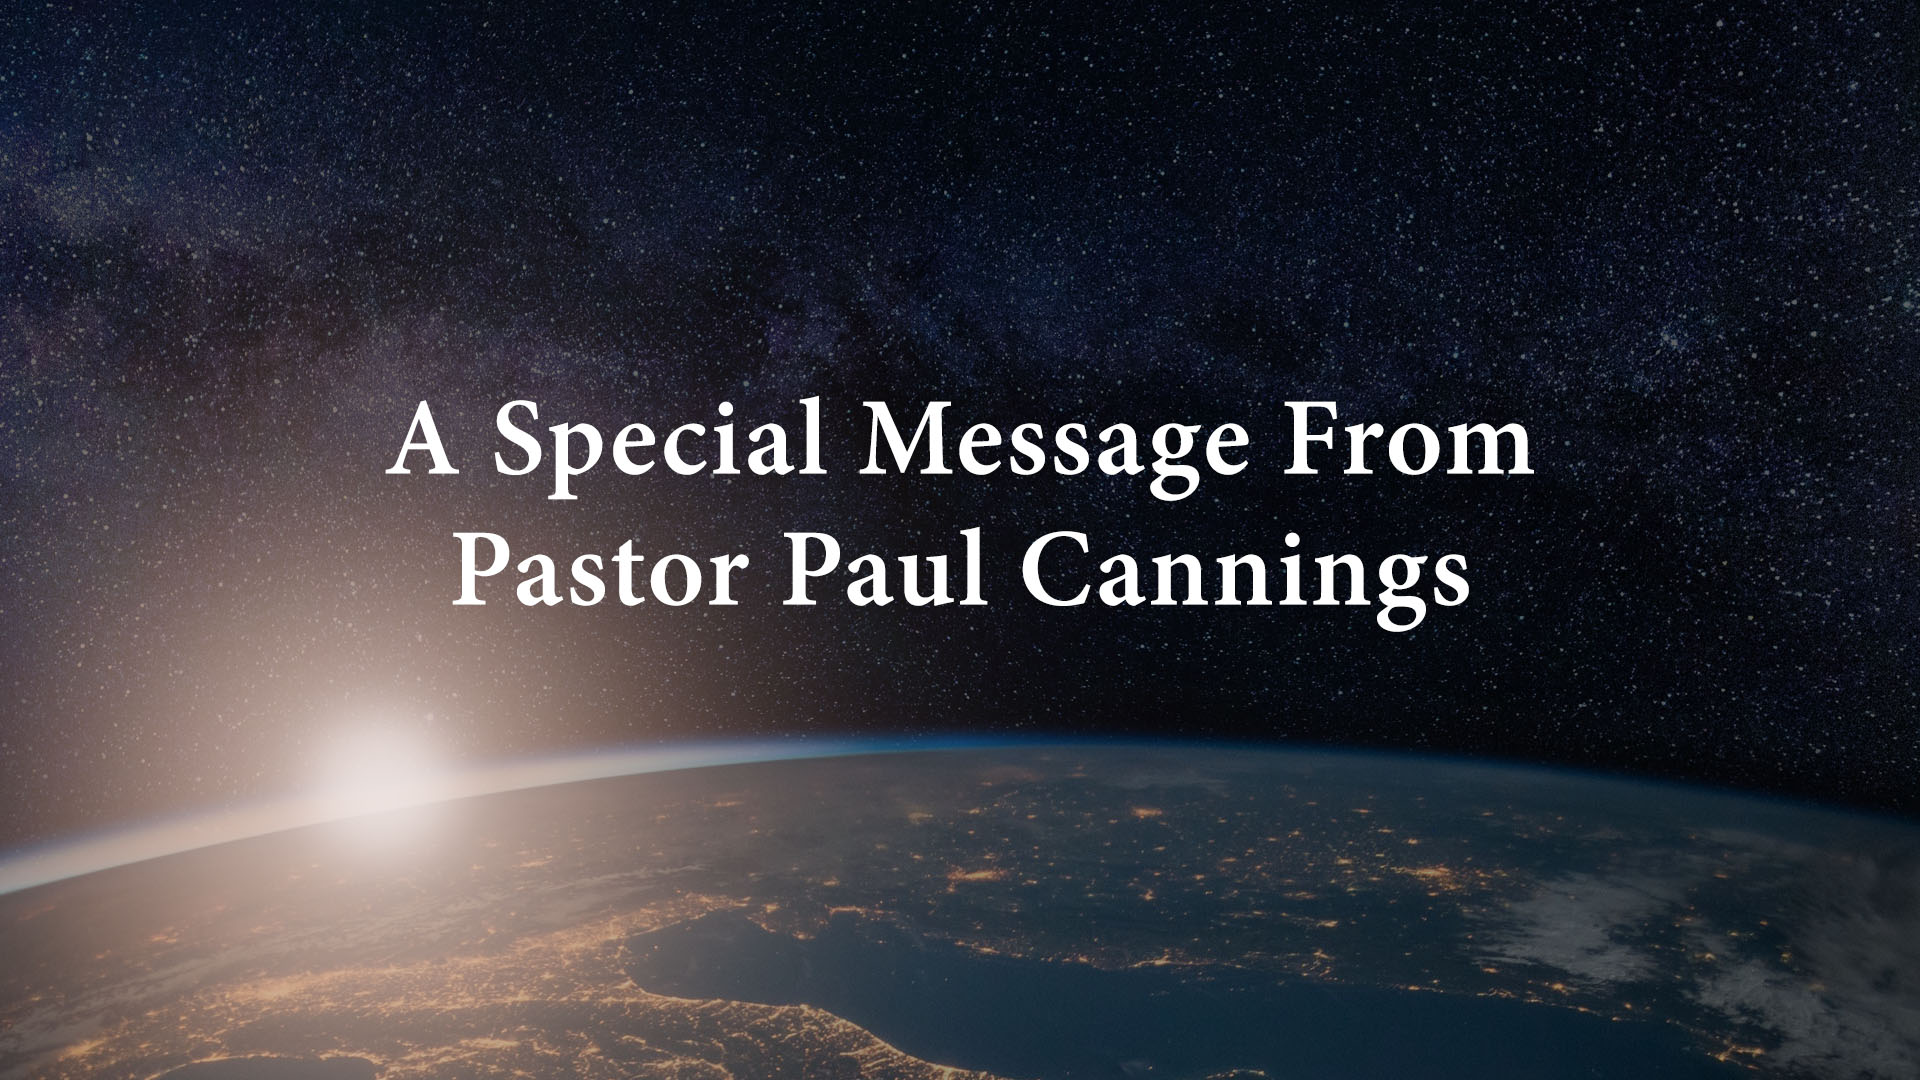 A Special Message From Pastor Paul Cannings